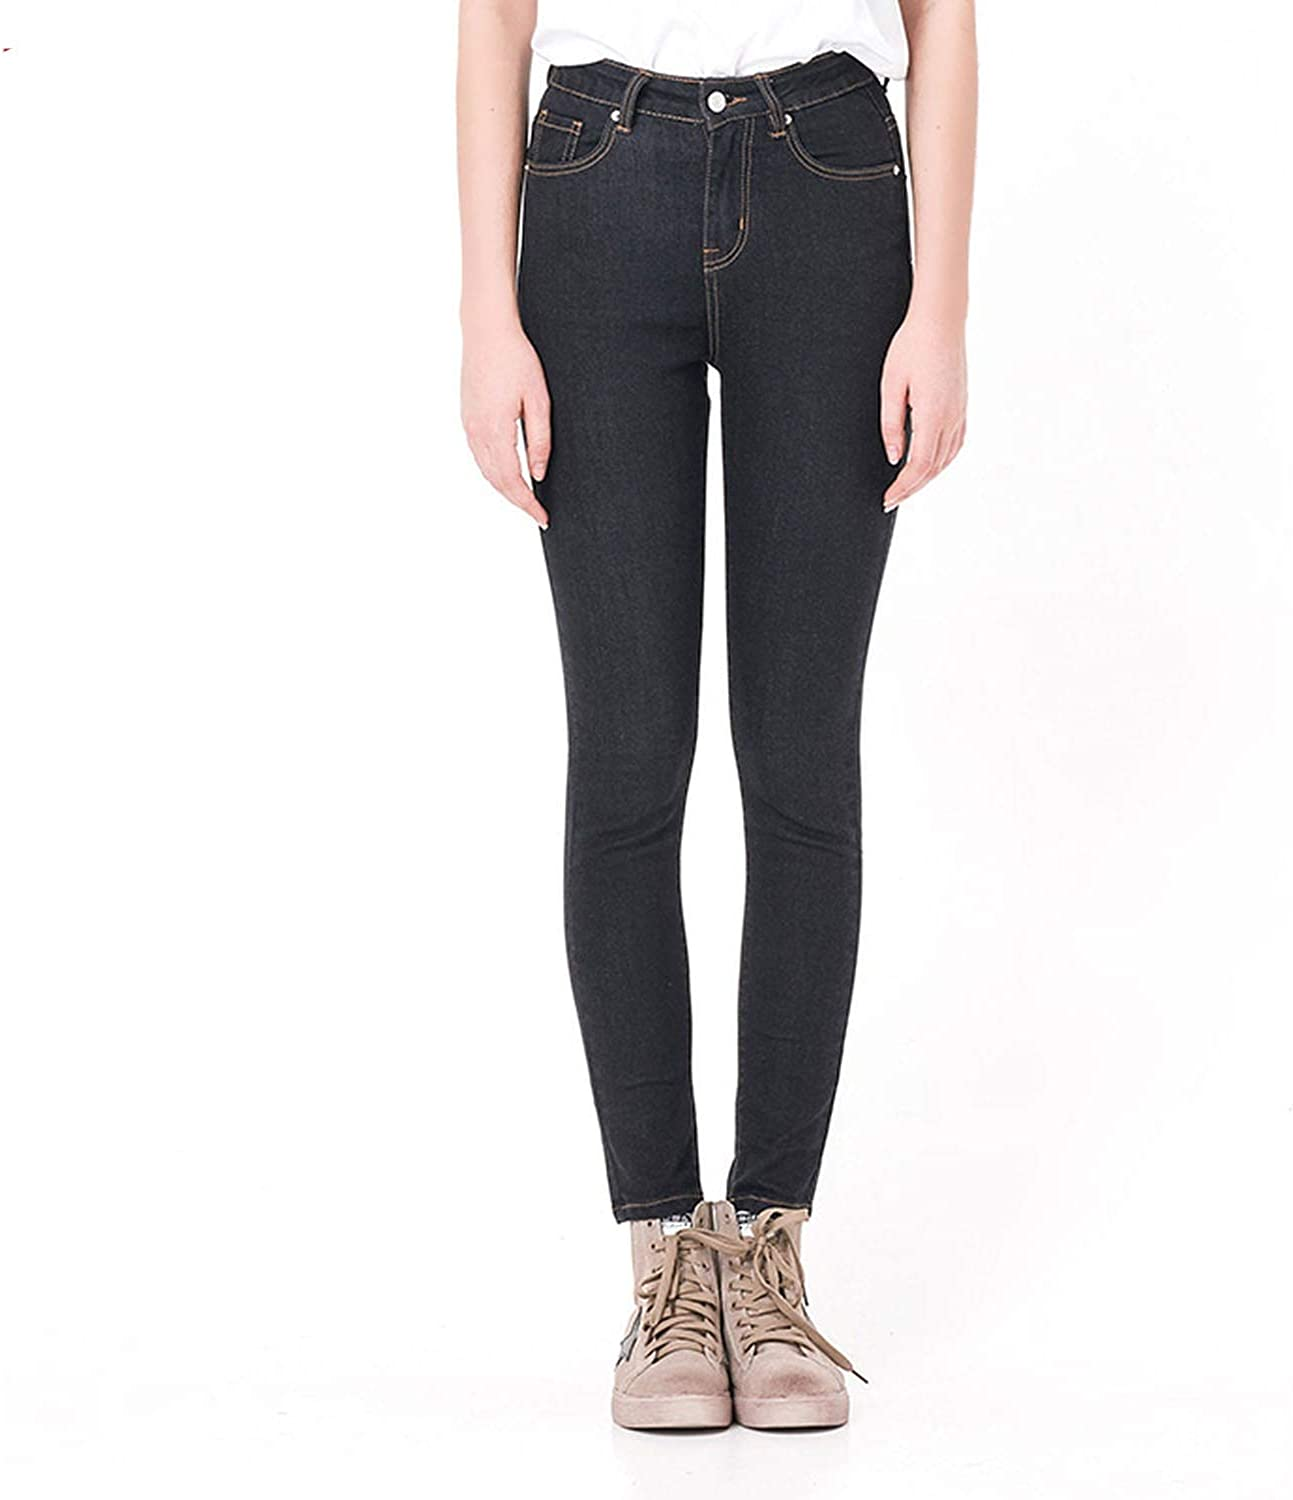 Alerghrg Jeans Woman High Elastic Plus Size Stretch Jeans Female Washed,Black,L,Russian Federation